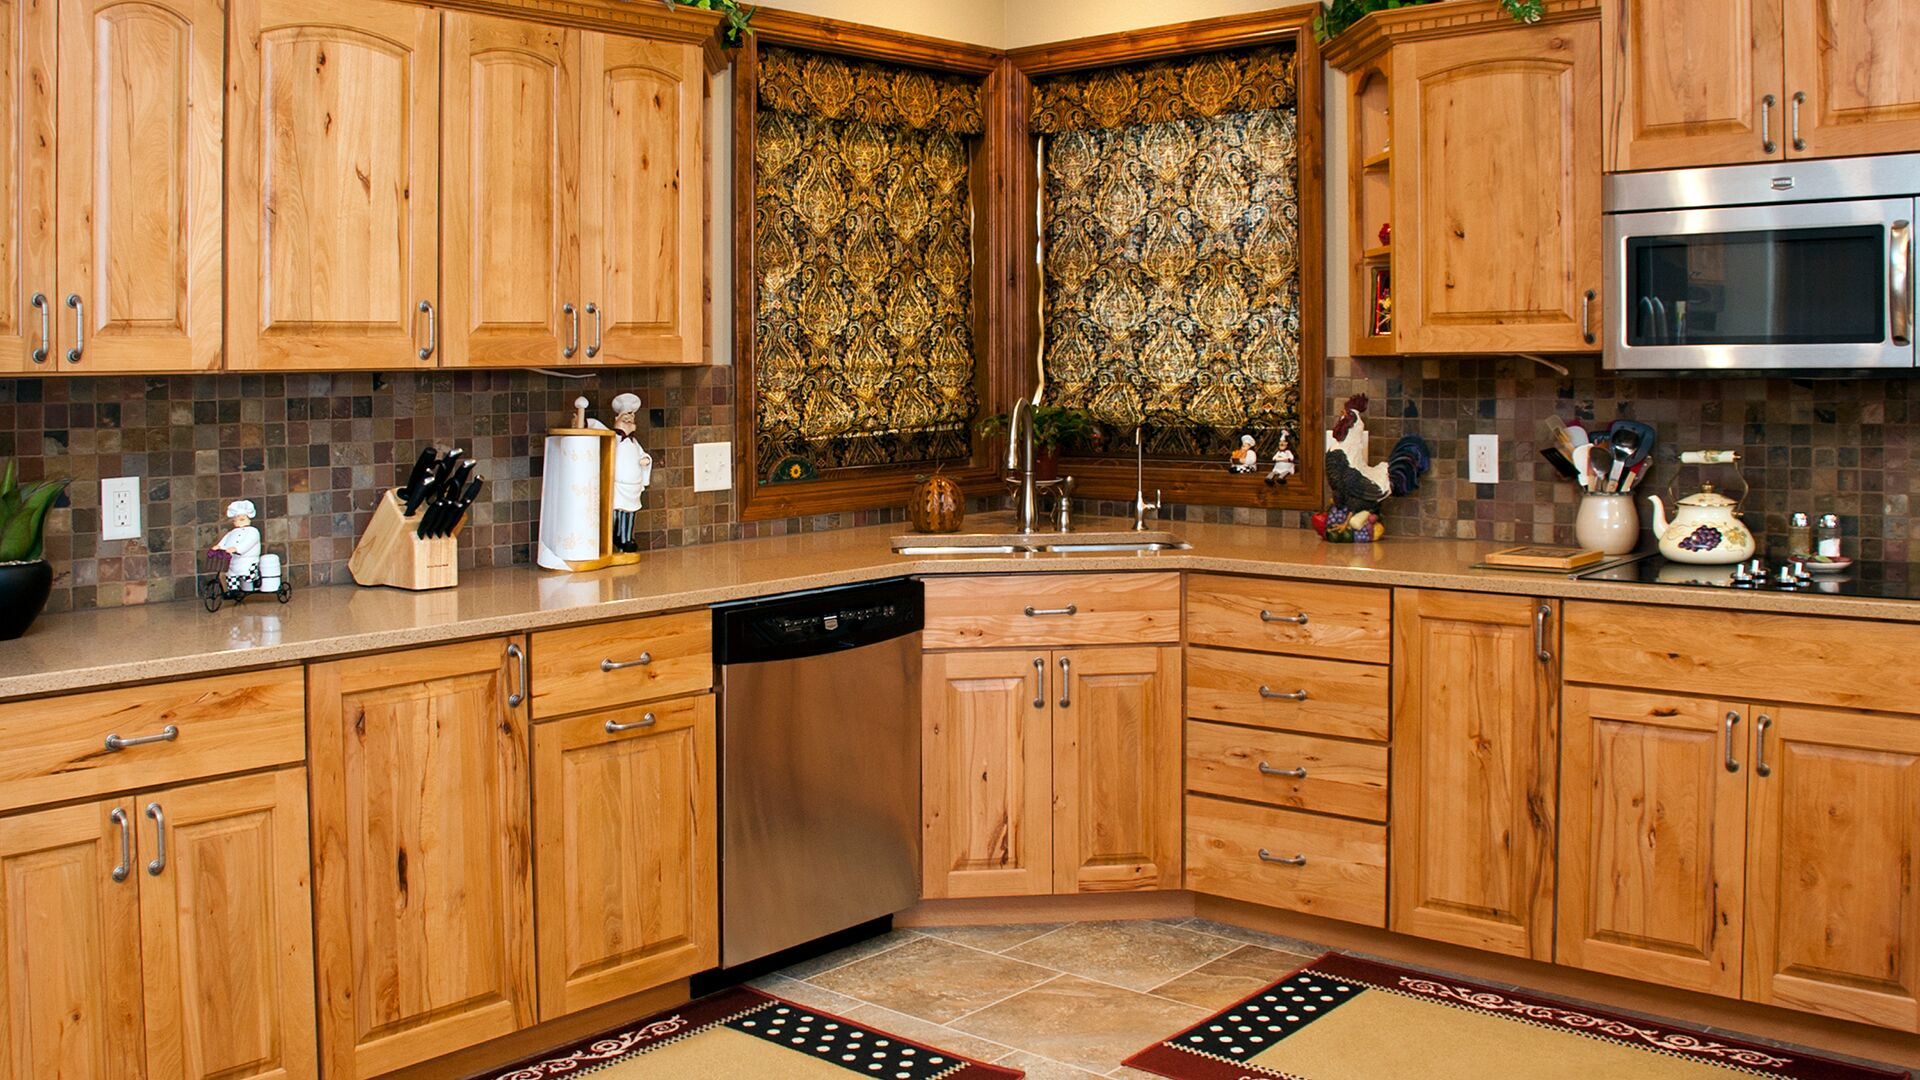 with together bella cute kitcheninspiration alder san francisco appliance base cabinets dura ming high knotty ga door bar in beech cabinet us trend good flagrant panel californiacustom